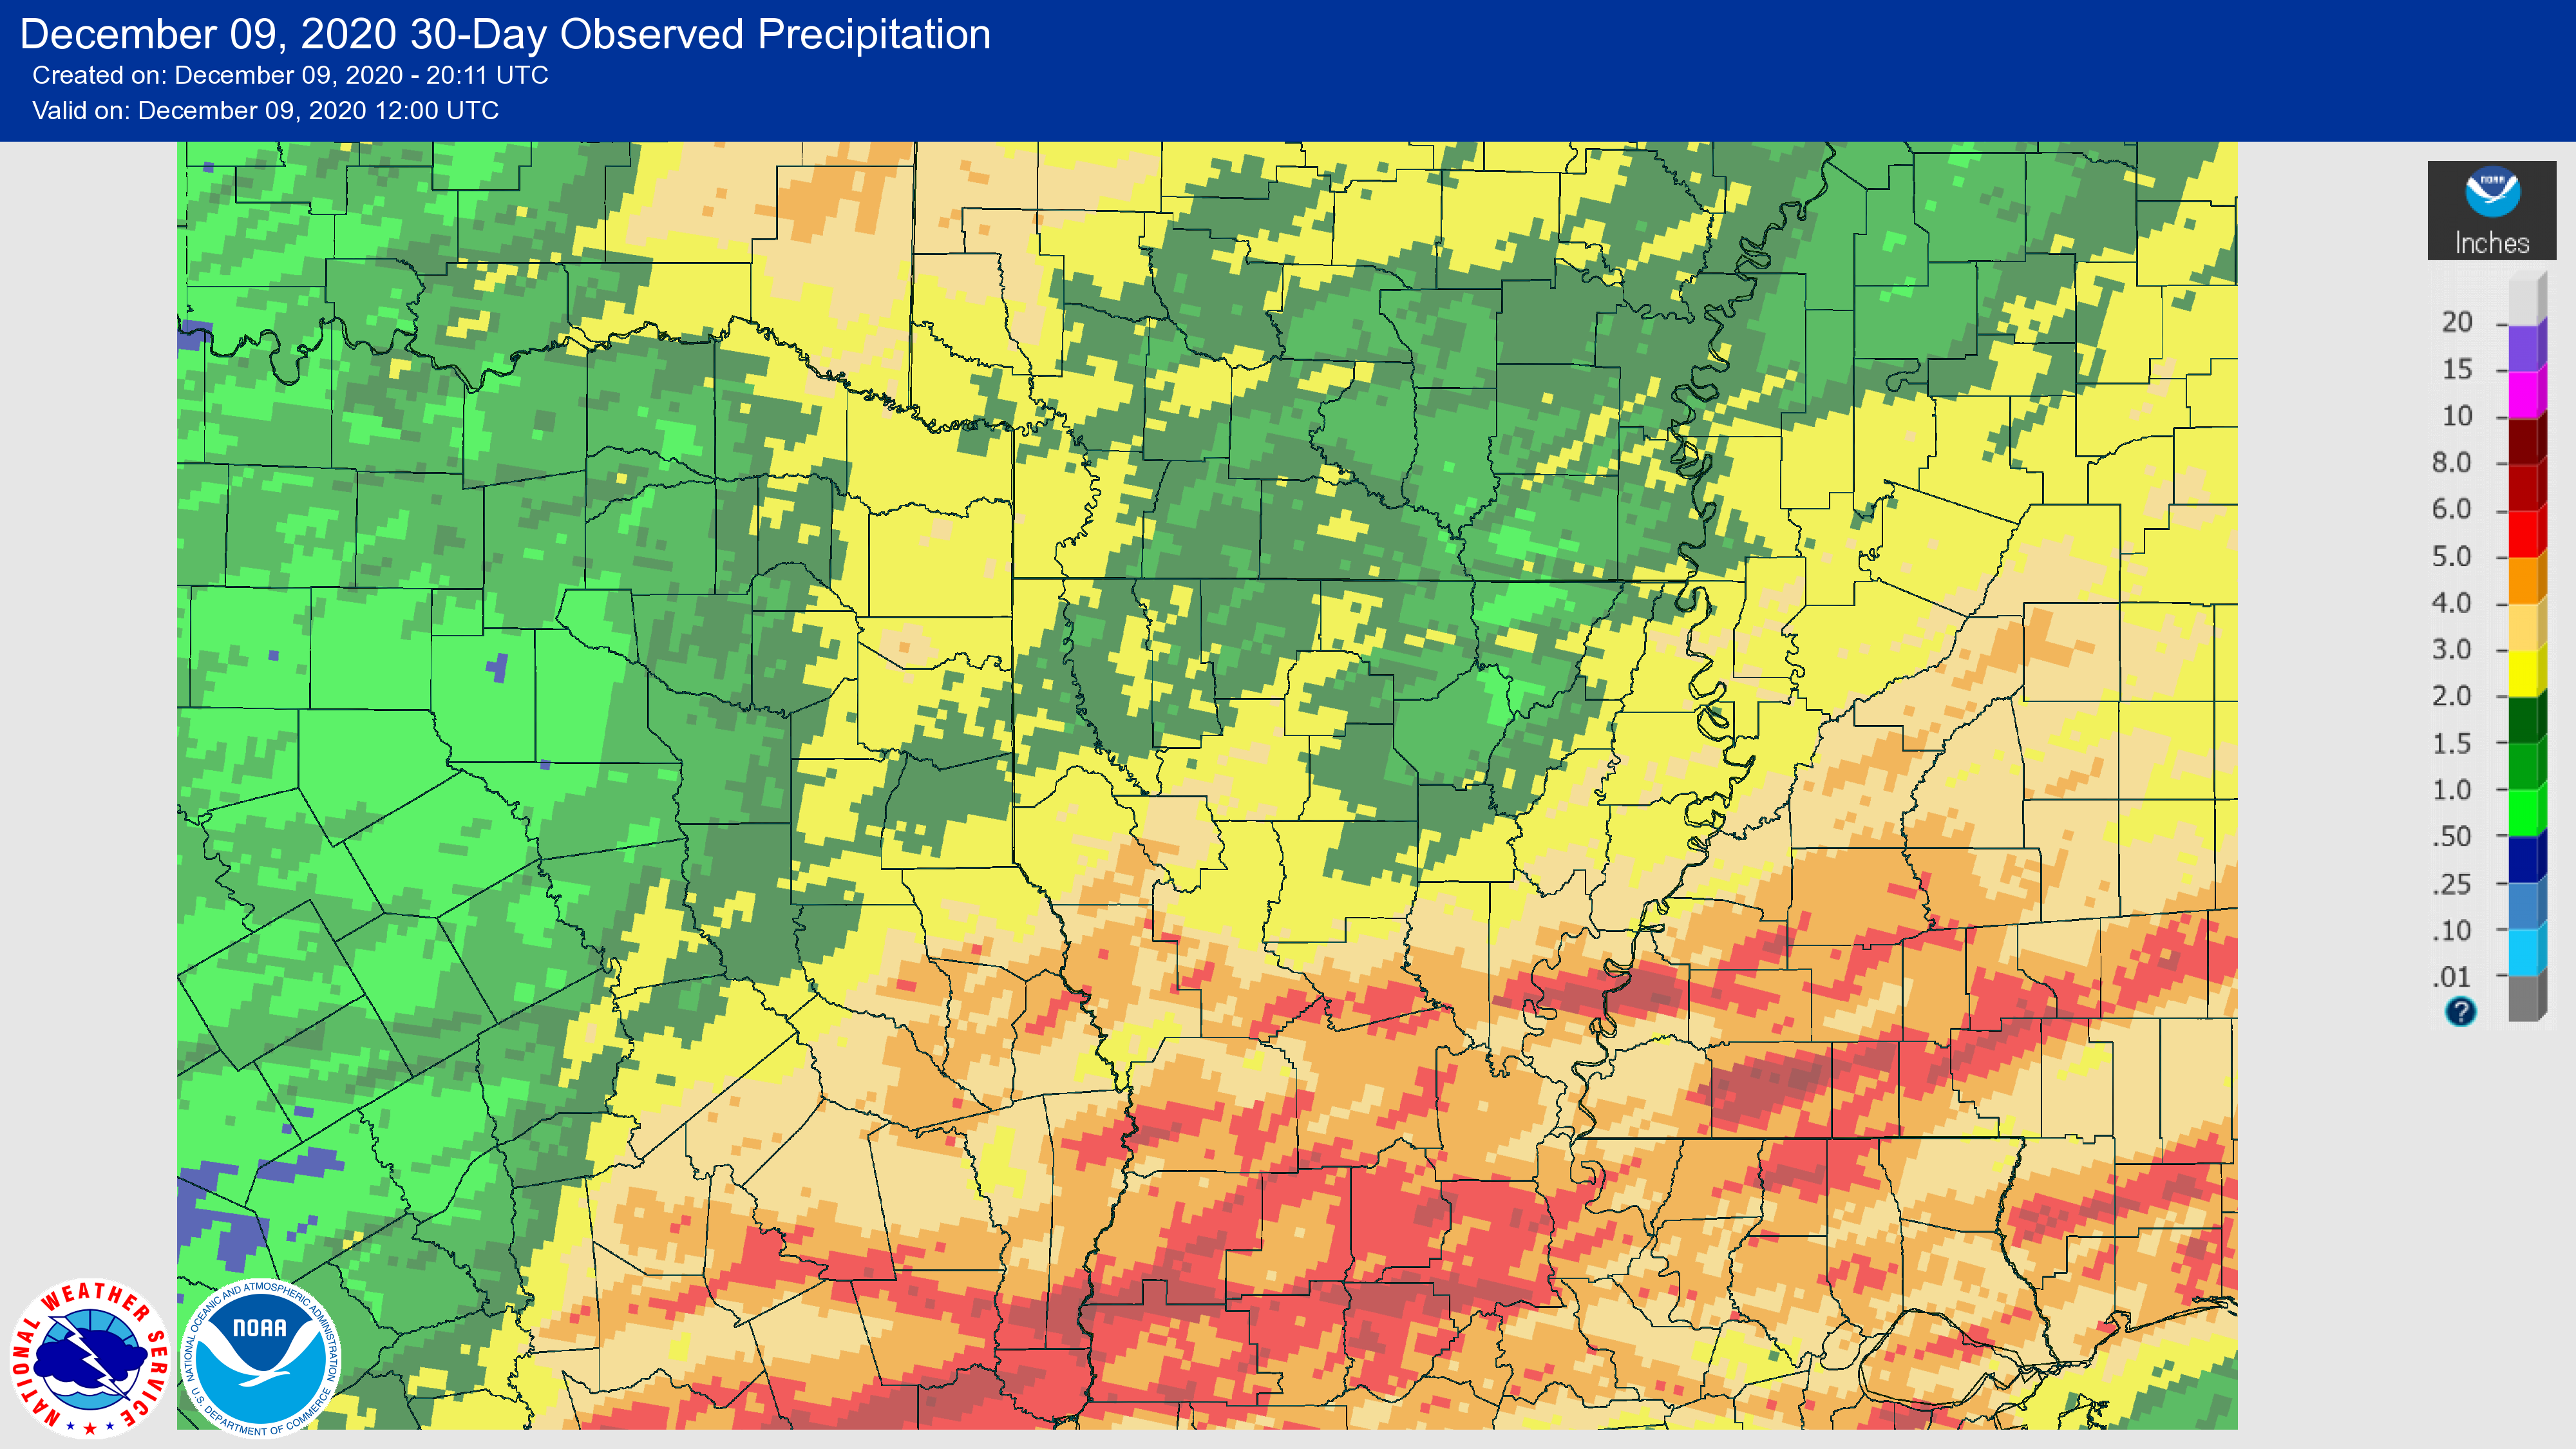 Rainfall in last 30 days to December 9, 2020.